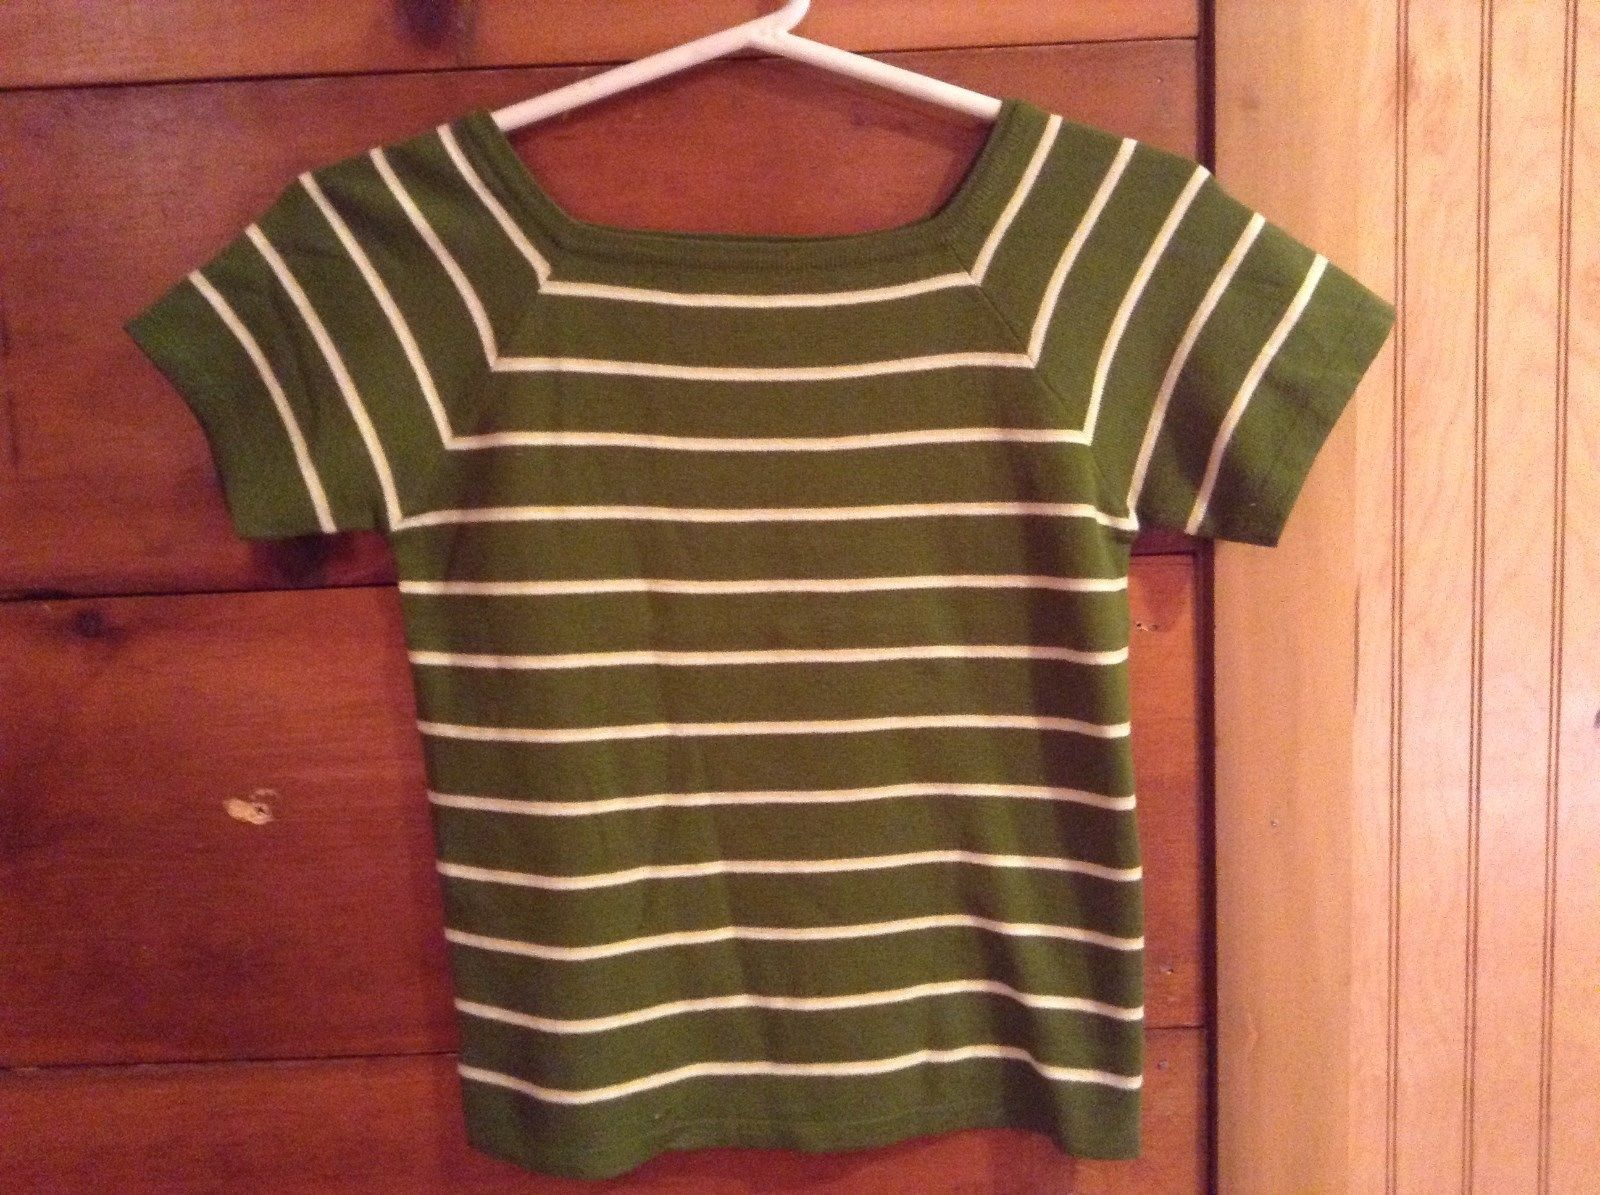 Nile Green Shirt Short Sleeve Stretchy Yellow White Striped No Size Tag